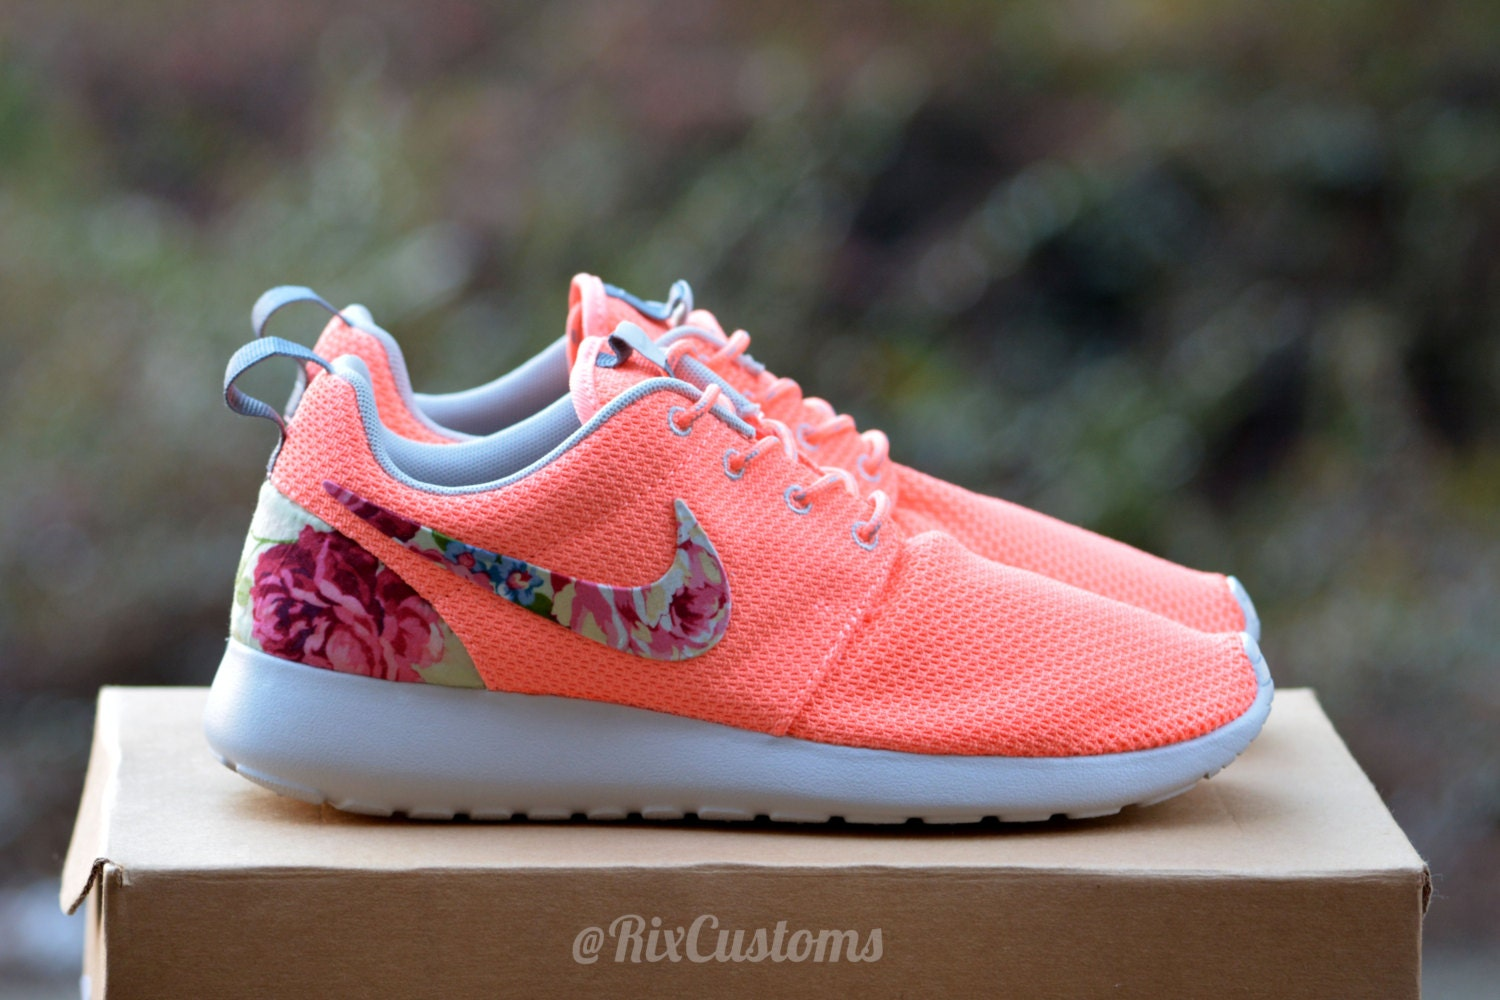 Clearance Floral Nike Roshe Run - Special Offers Unisex Green Blue White Easy Travelling Nike Free Flyknit Cheap Shoes